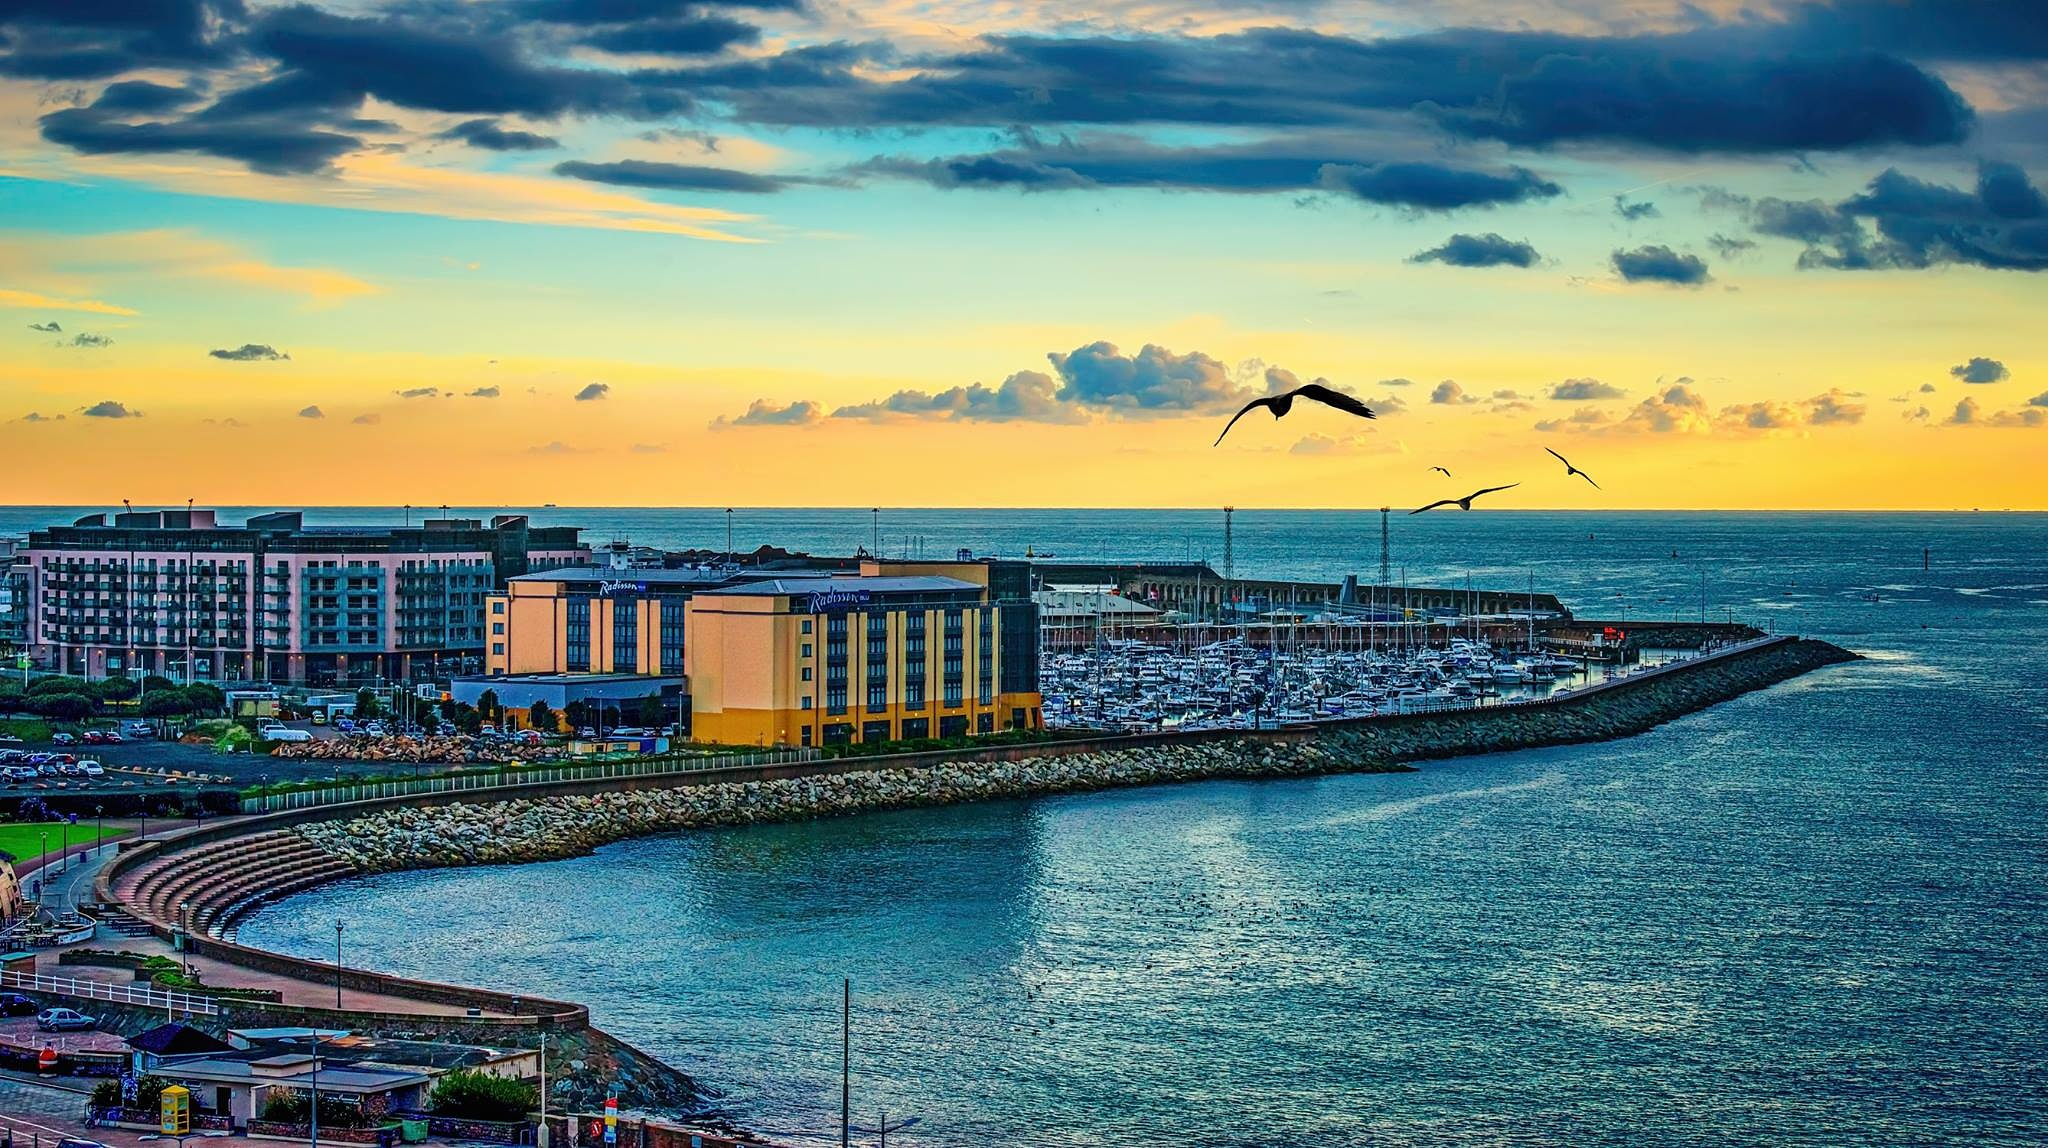 on the waterfront by Alan Pryor